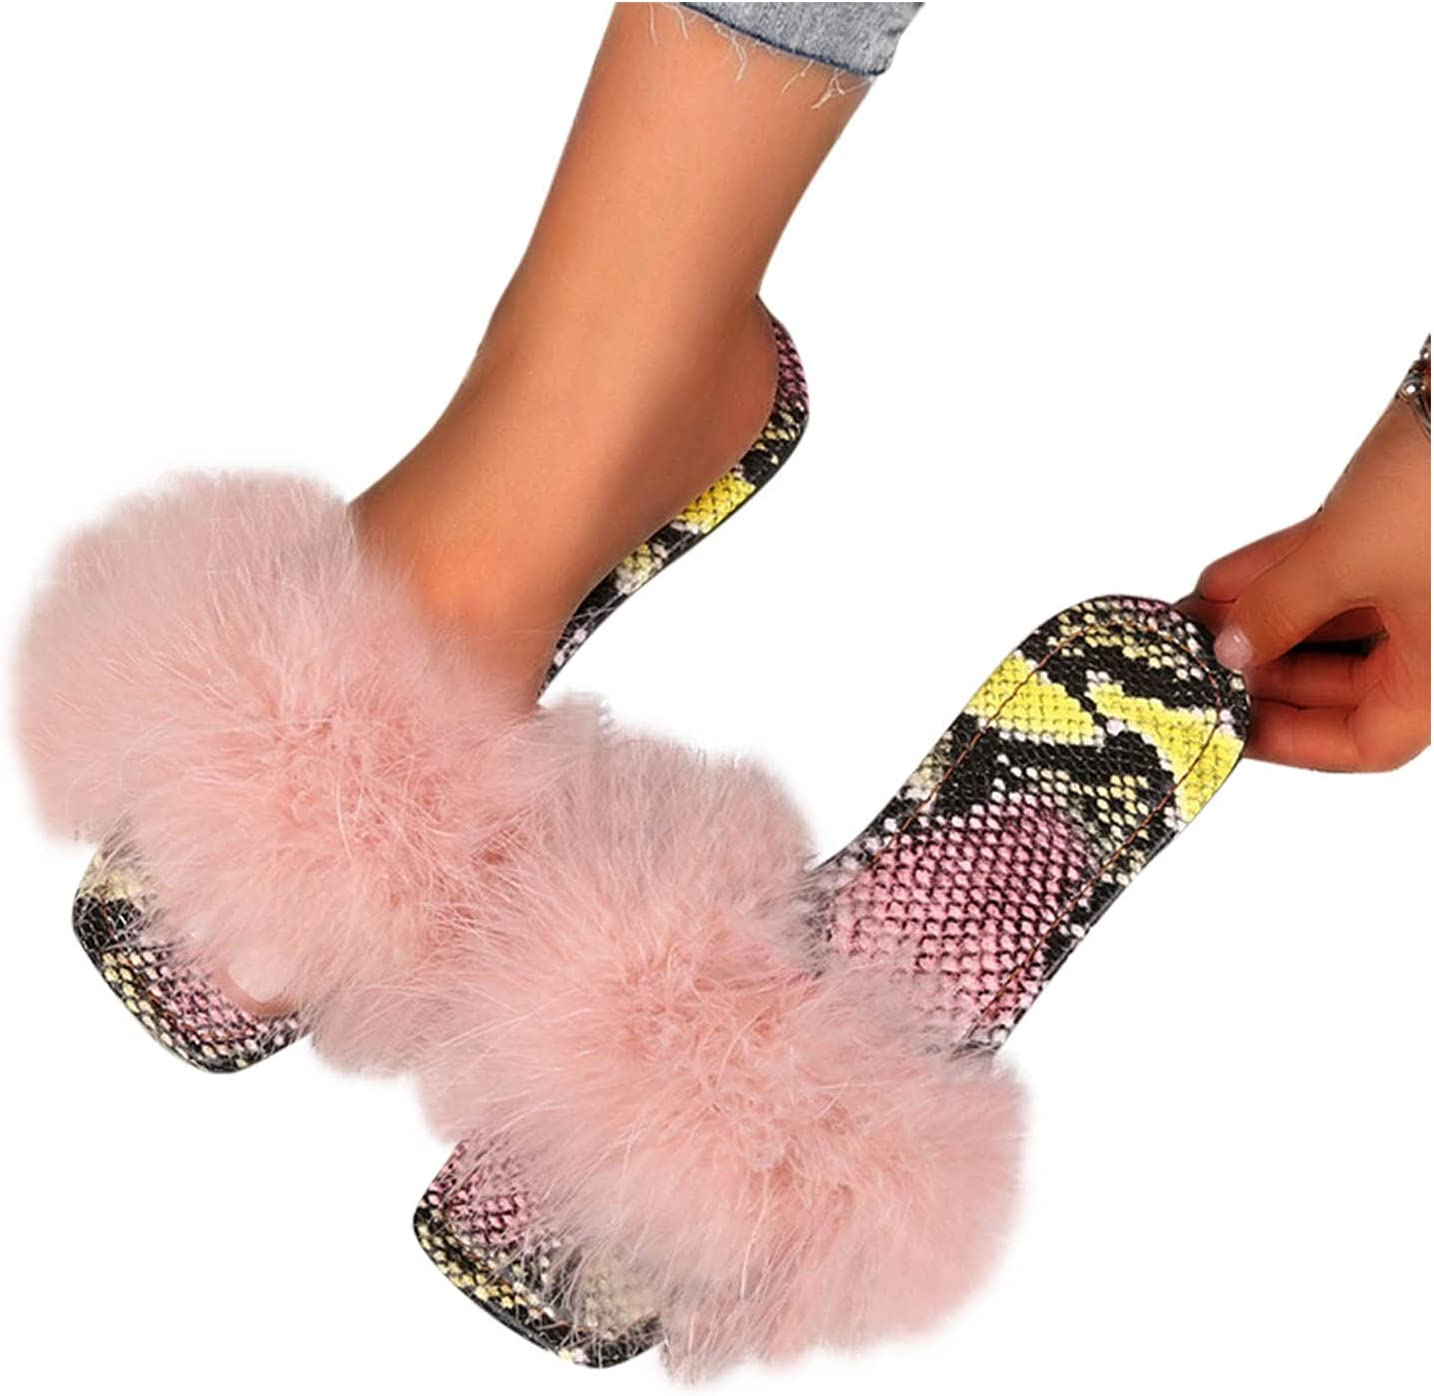 Olymmont Flat Sandals for Women Summer Fluzzy Feather Snakeskin Leopard Printed Square Toe Slippers Slip-on Furry Fashion Dressy Sexy Slides (Pink, 8.5)